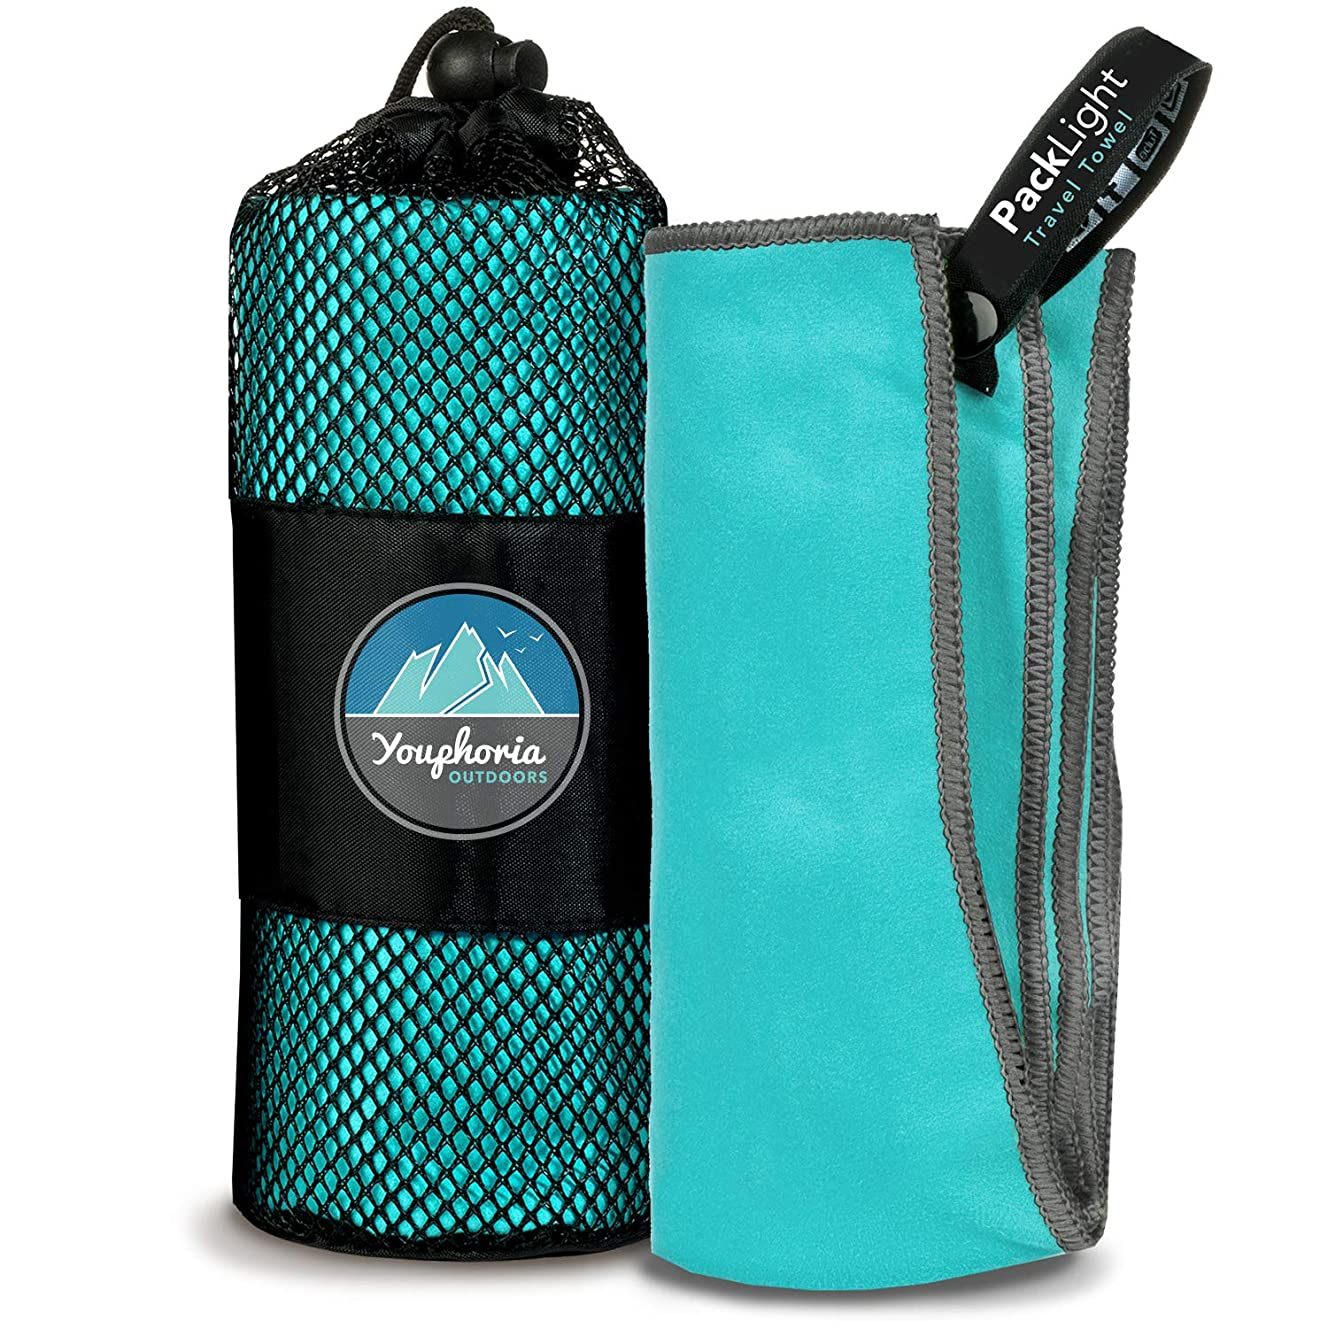 Youphoria Outdoors Microfiber Quick Dry Travel Towel - Ideal Fast Drying Towels for Travel, Camping, Beach, Backpacking, Gym, Sports, and Swimming - Ultra Light, Fast Drying and Absorbent - 3 Sizes